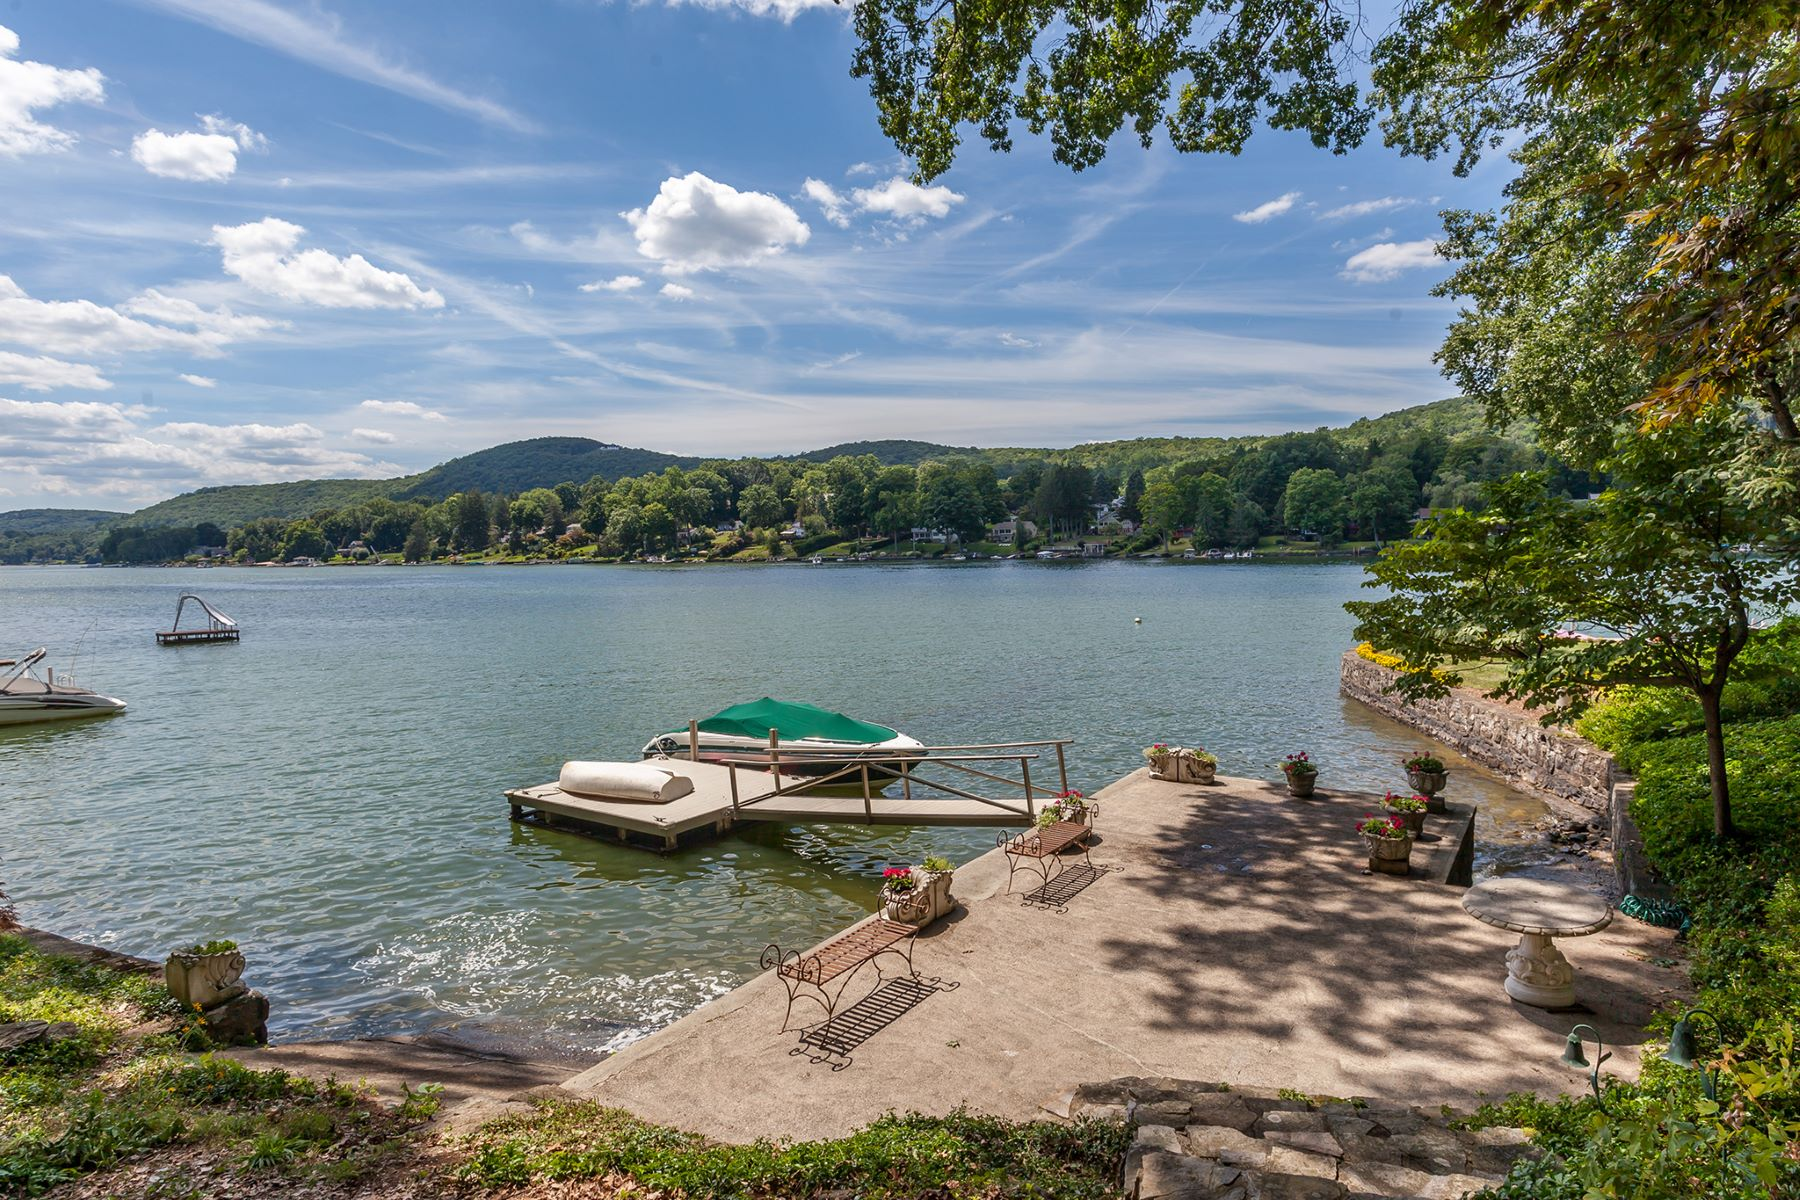 Casa Unifamiliar por un Venta en Candlewood Lake Waterfront 42 Bogus Hill New Fairfield, Connecticut 06812 Estados Unidos